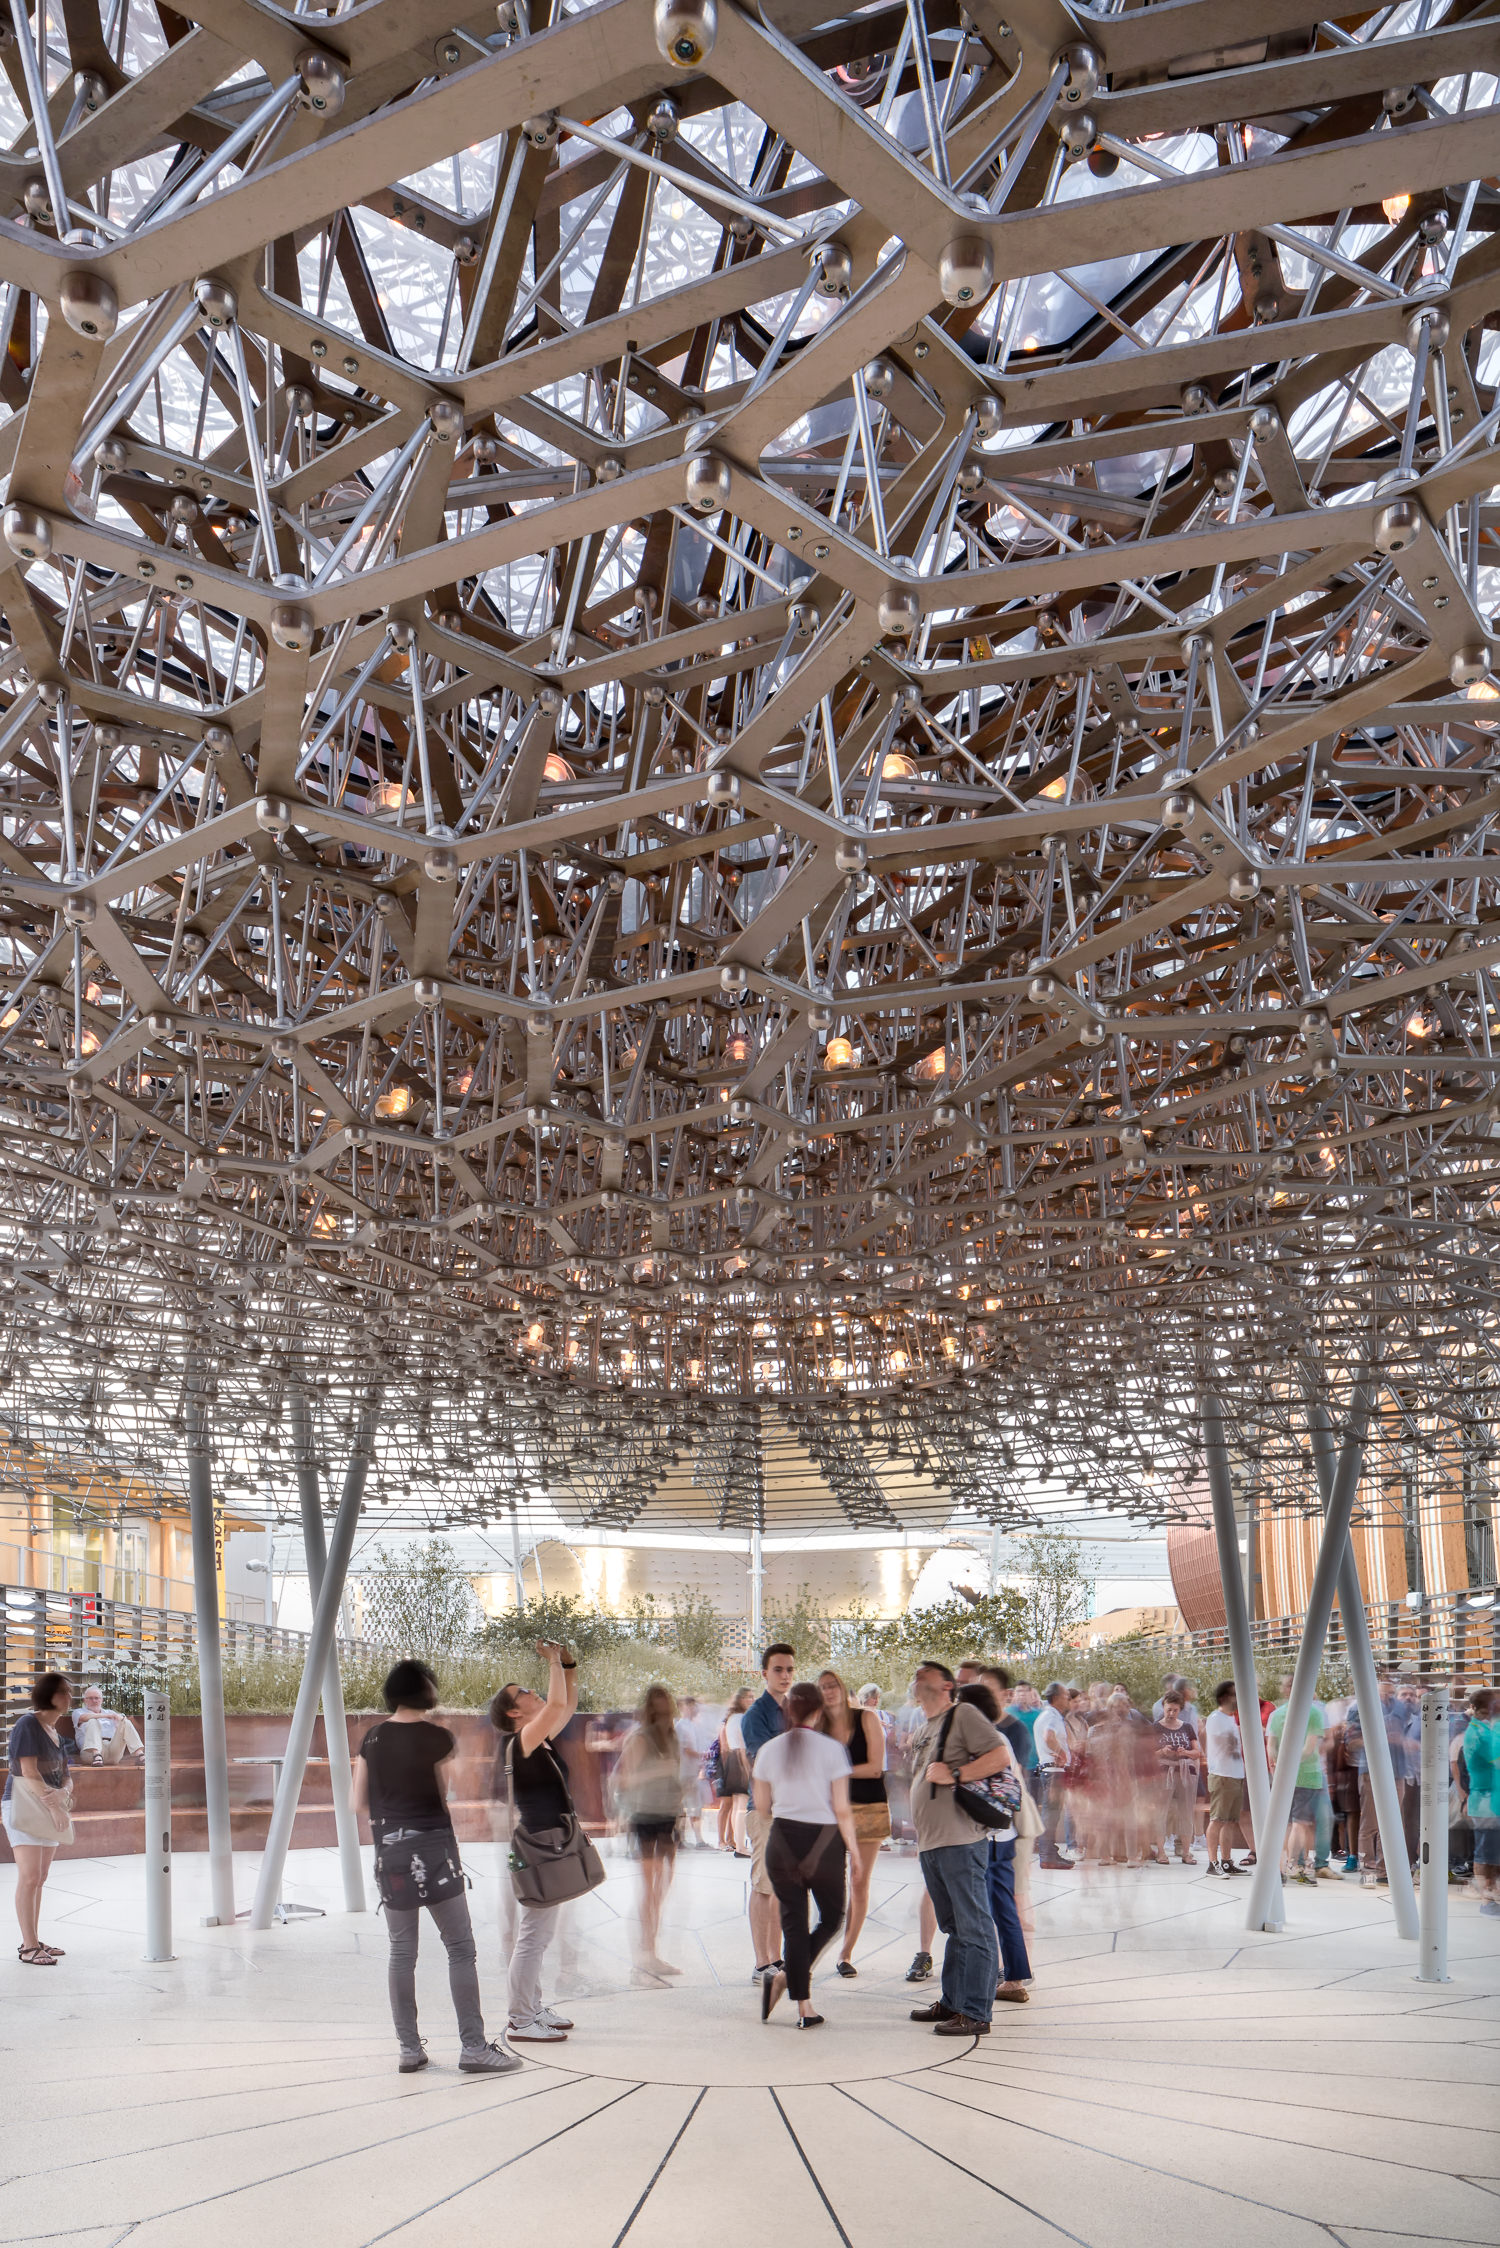 people watching uk pavilion, milan expo, mark hadden architecture photographer